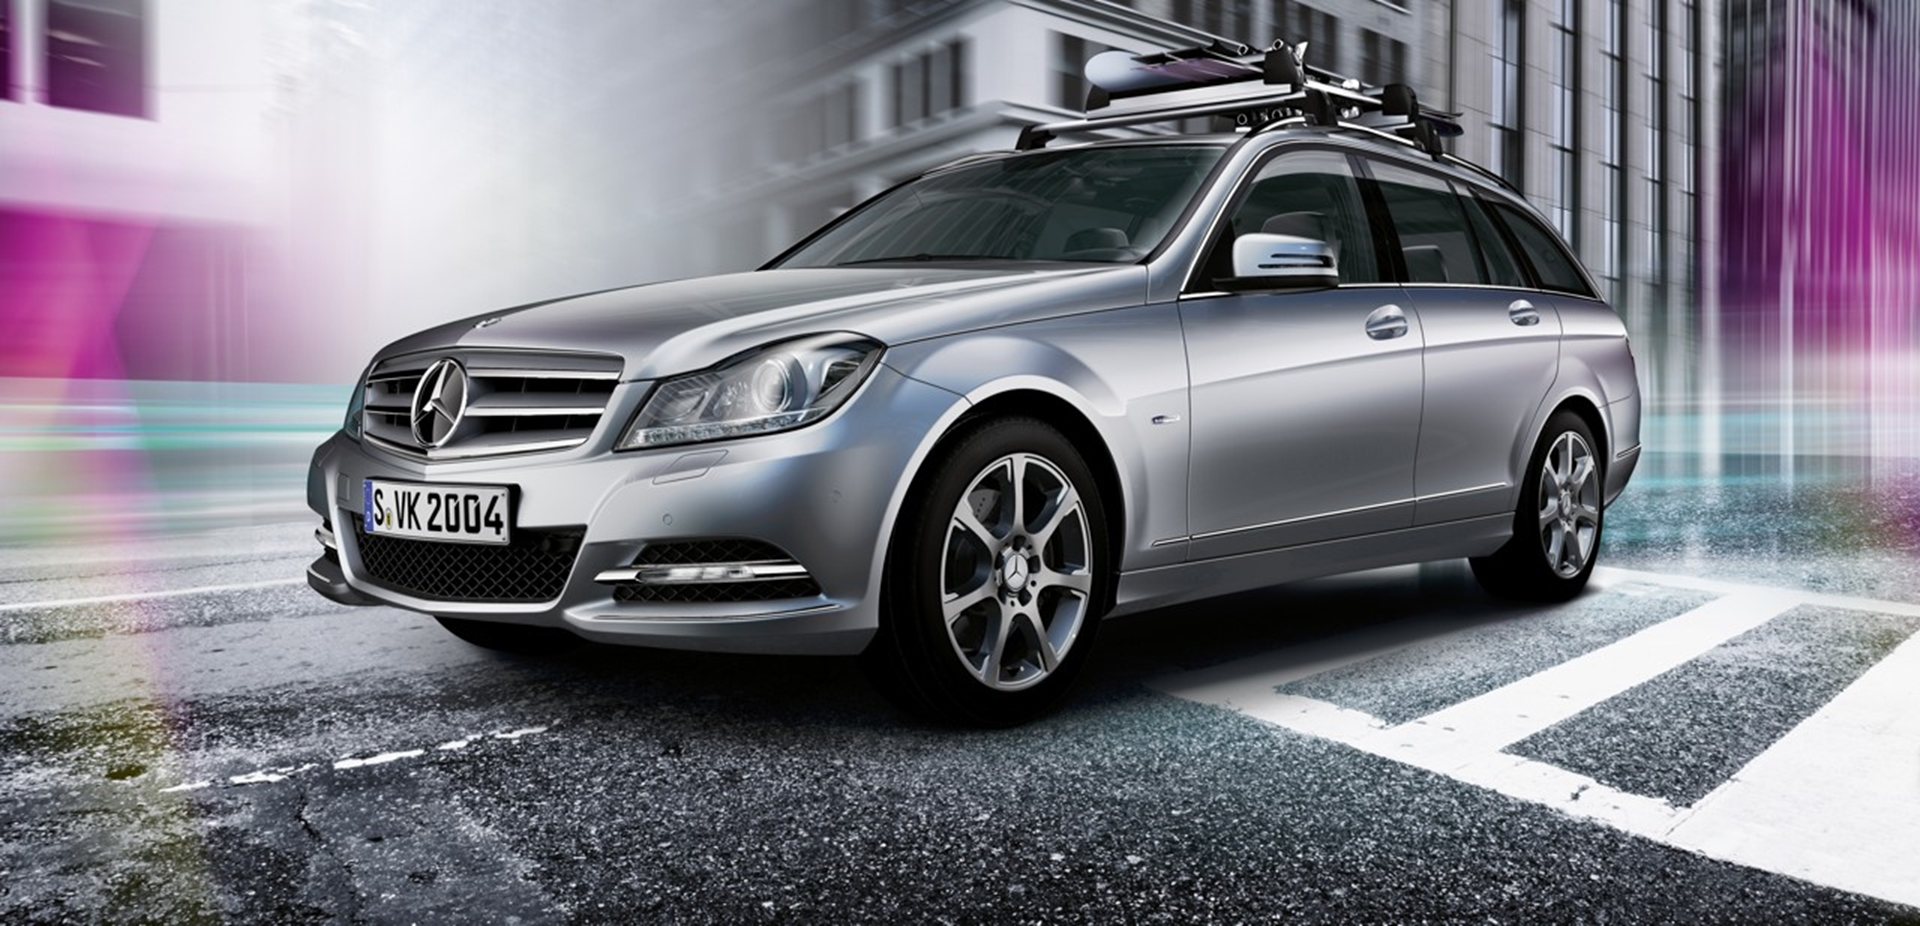 3d car shows genuine roof boxes for mercedes benz for Mercedes benz roof box 450 dimensions